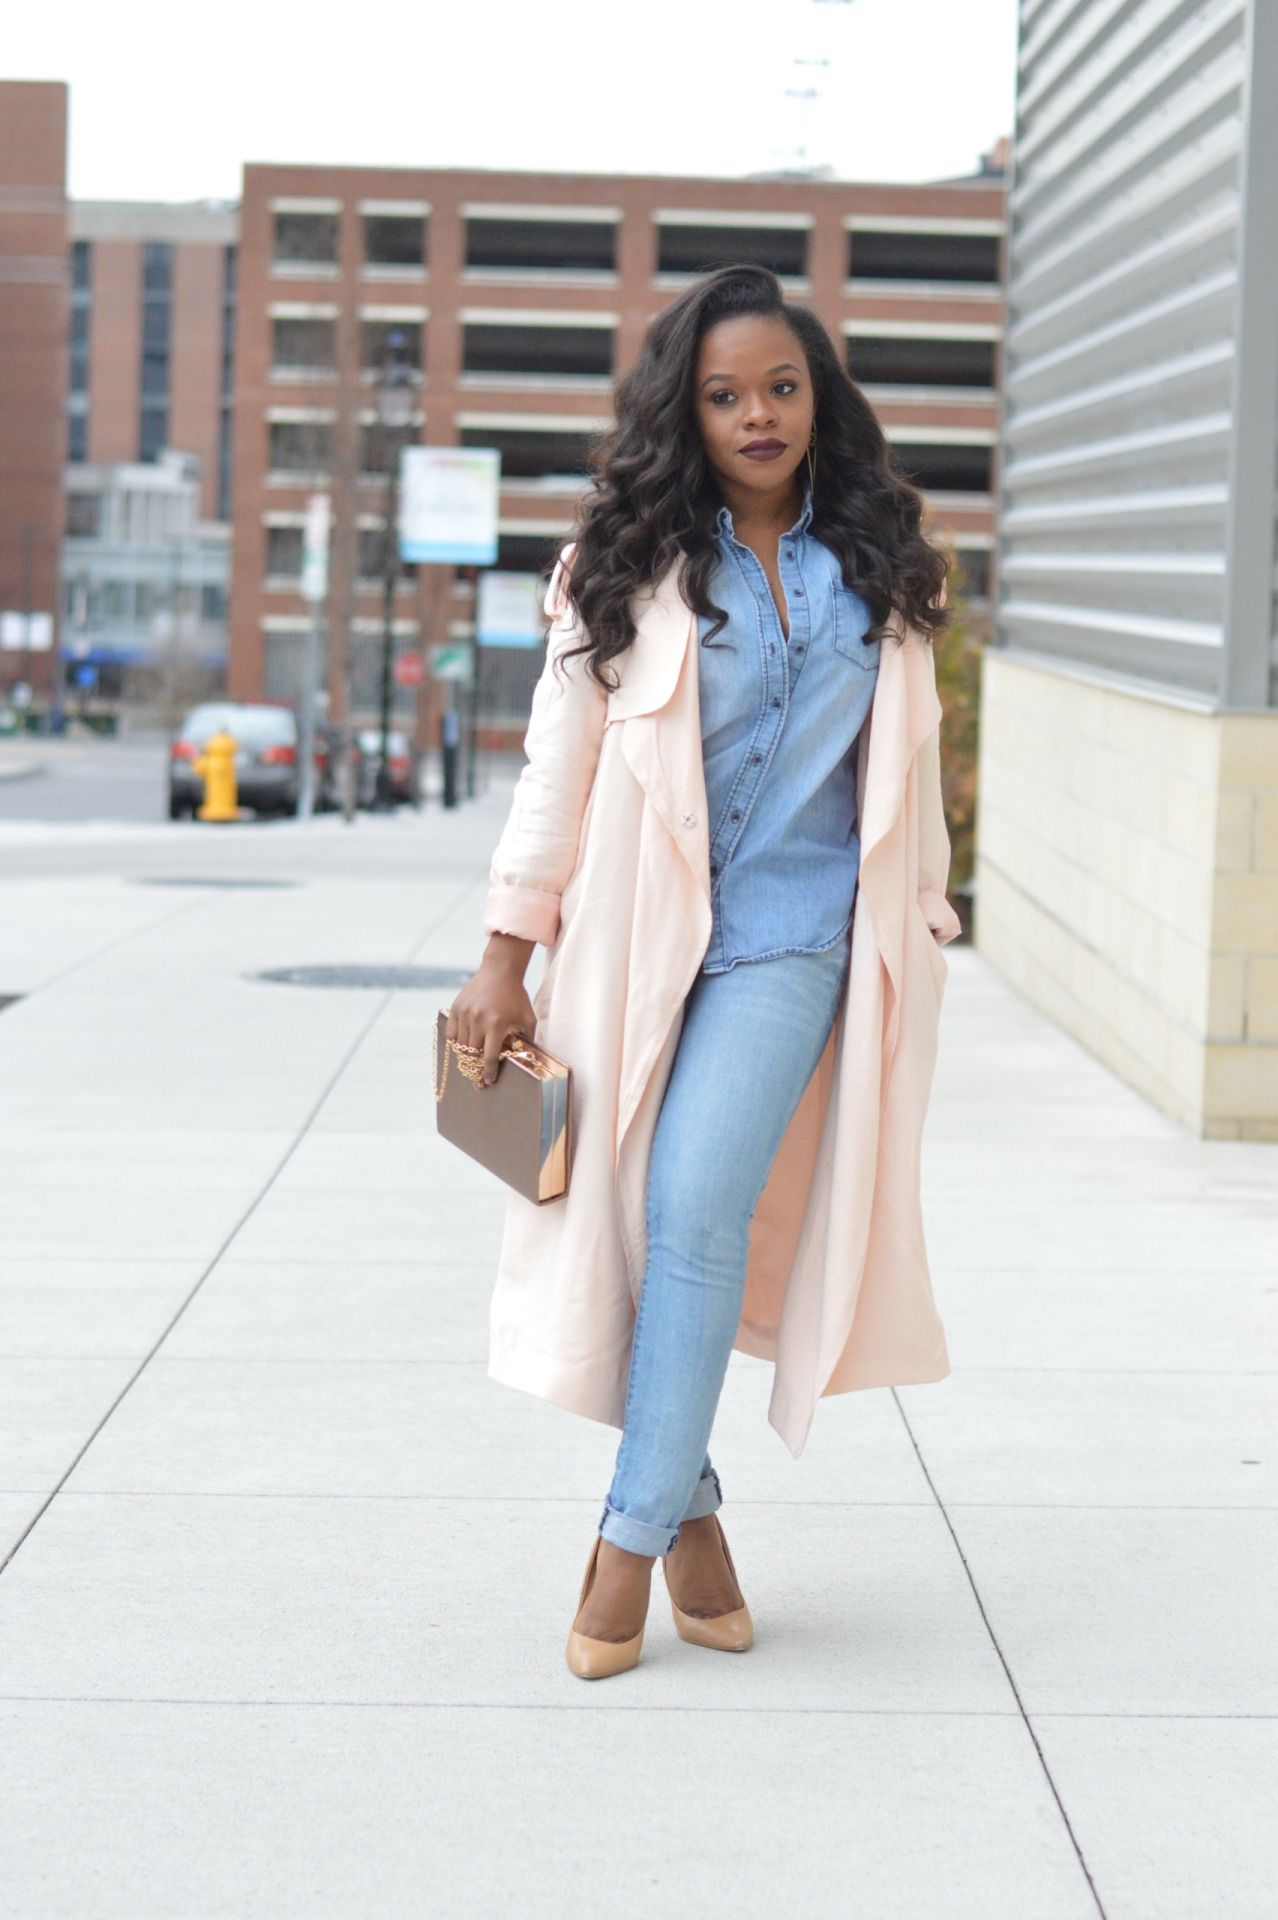 All About Fashion Fall Winter Looks From Black Girls